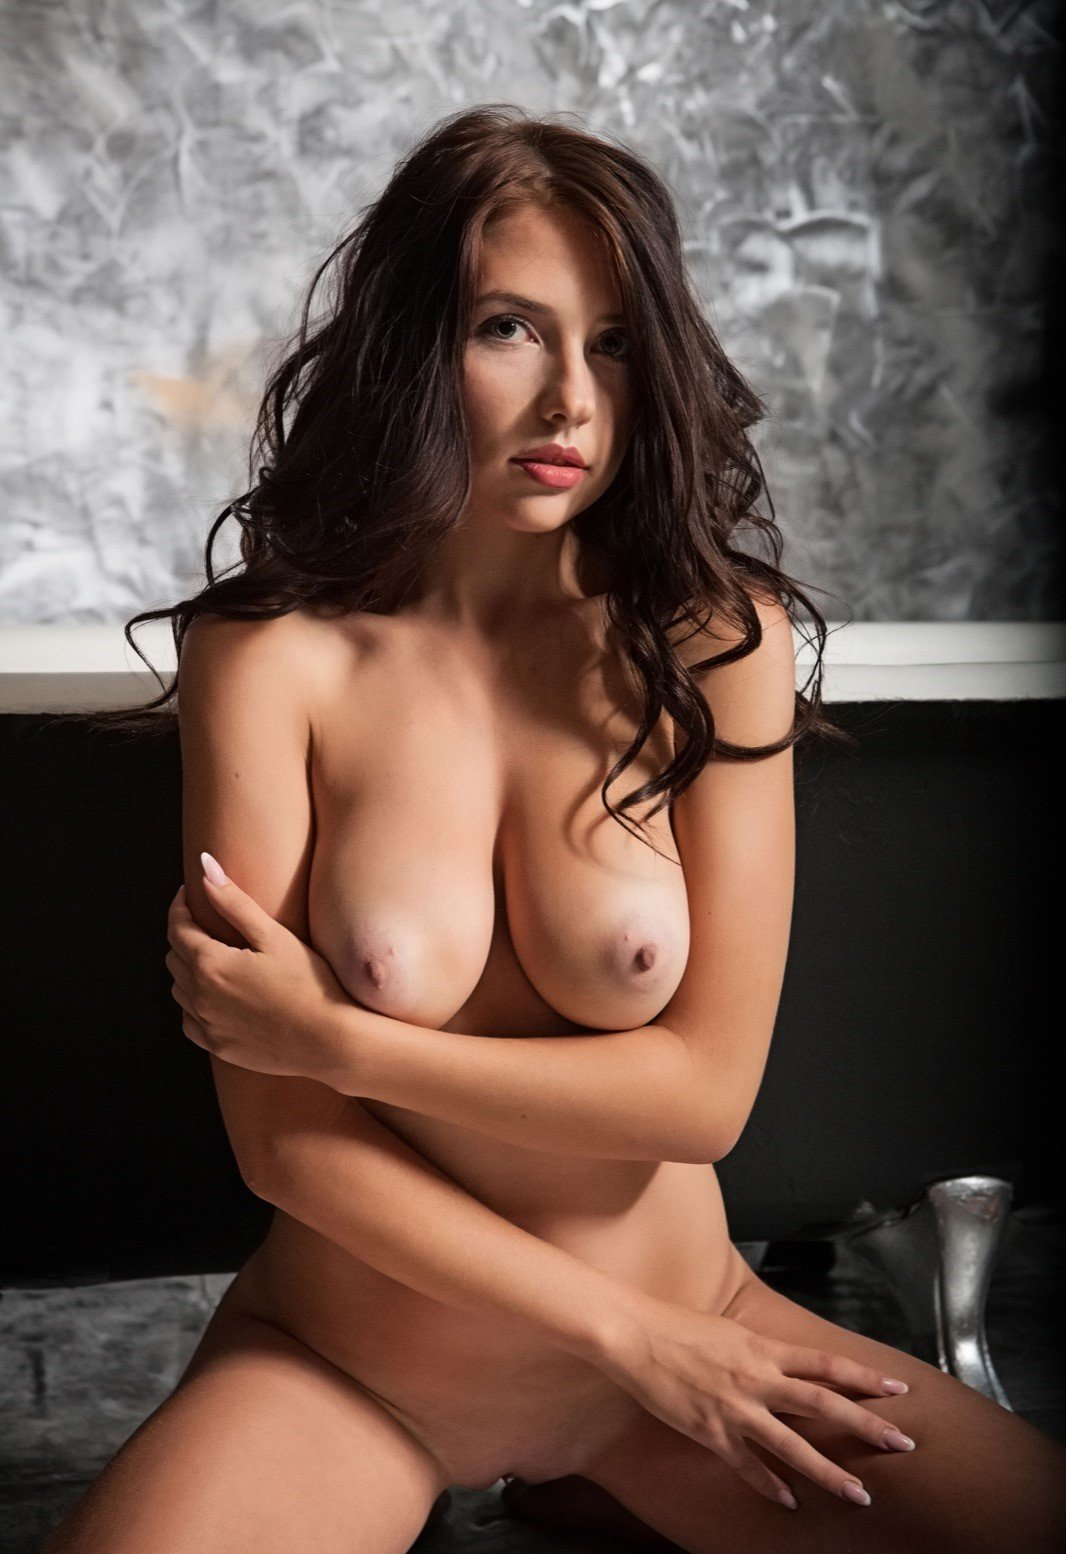 Finest Nude Chicks Threads Png